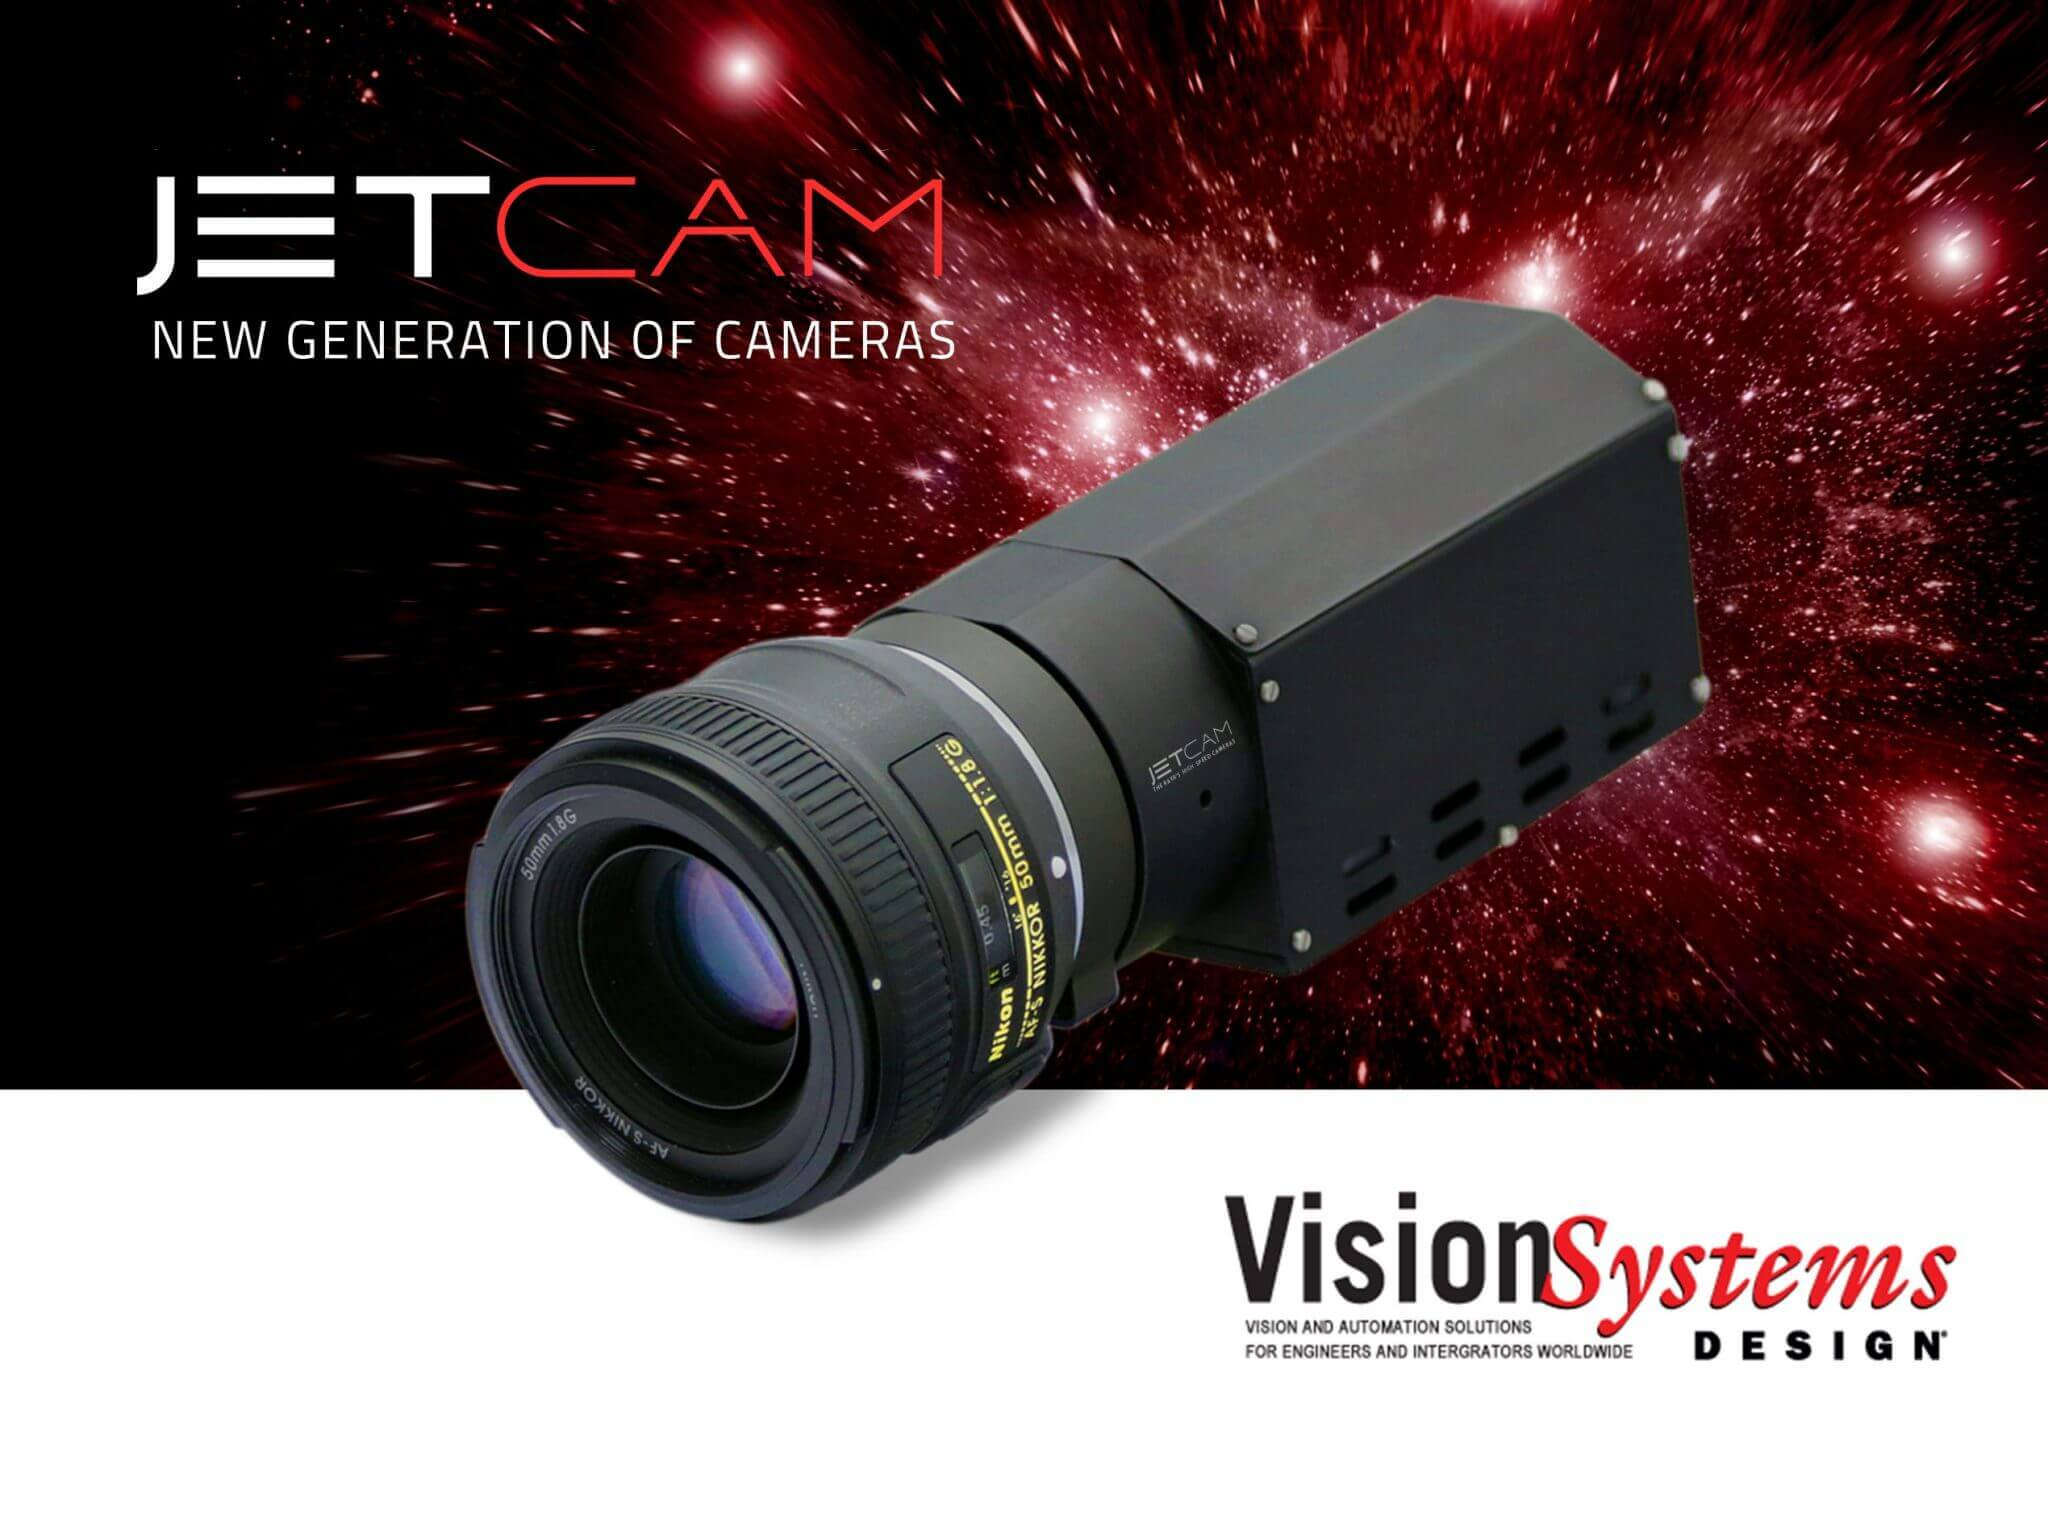 JetCam in Vision Systems Design